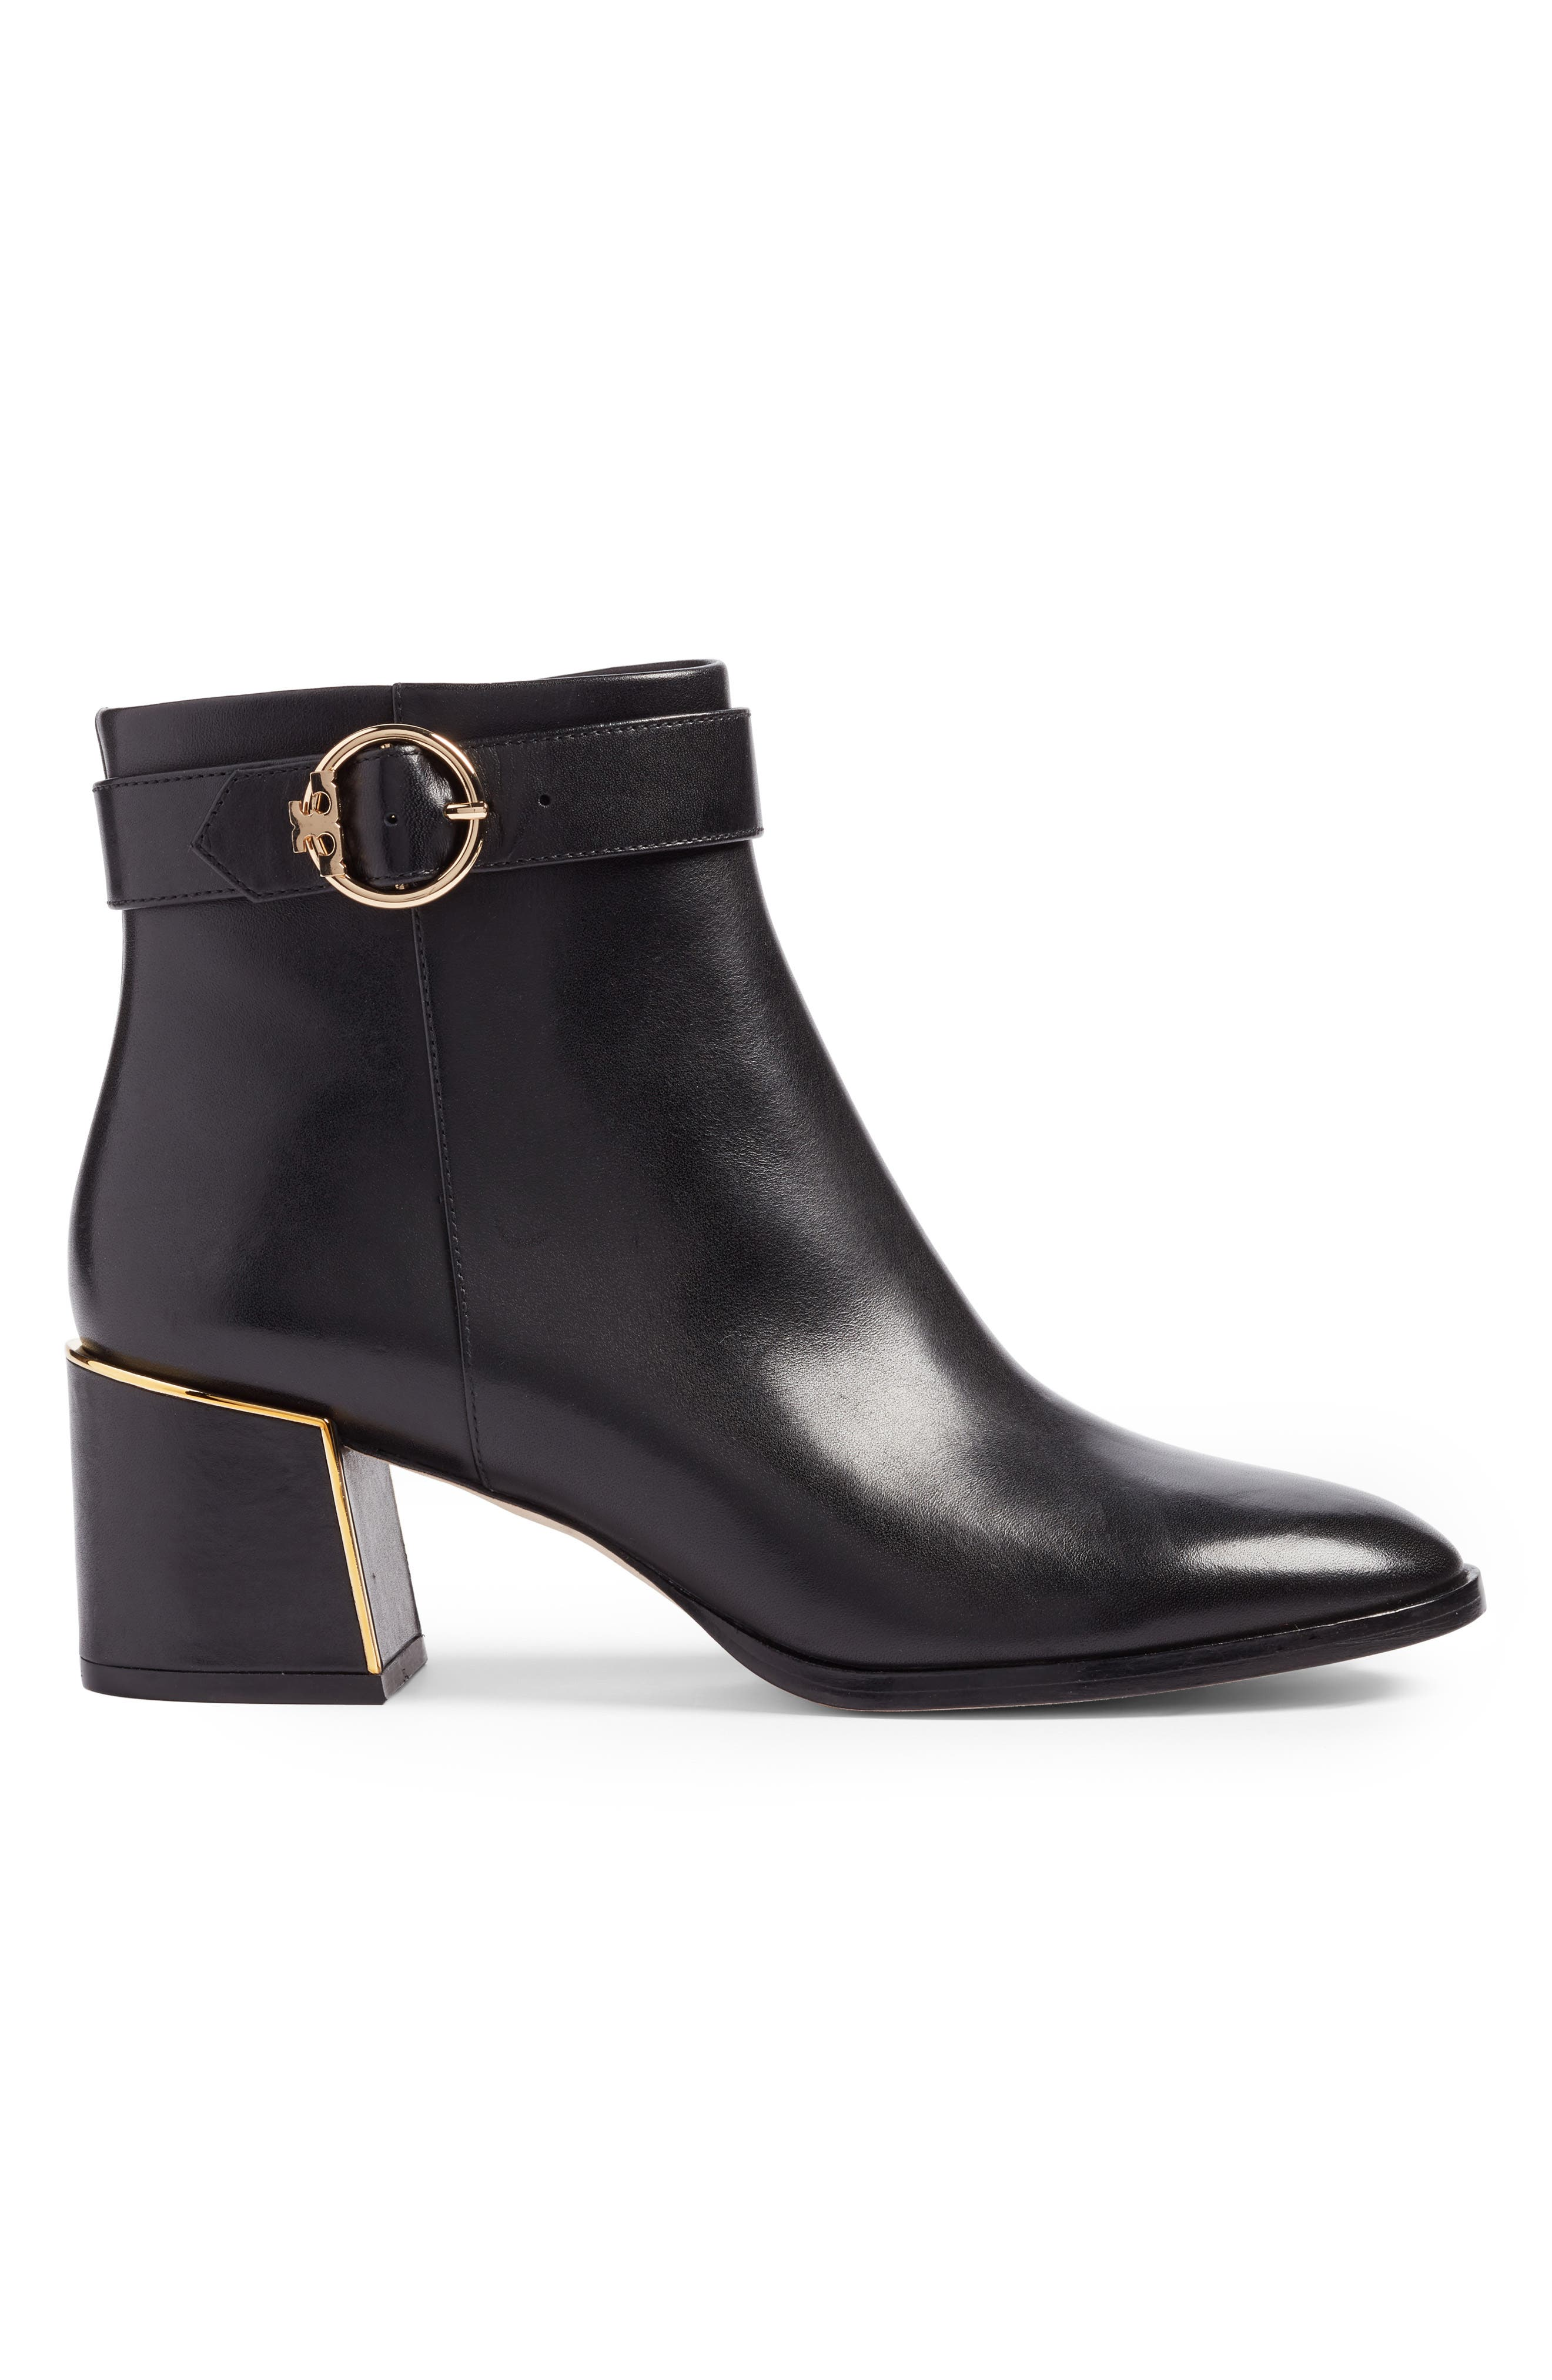 Sofia Buckle Strap Bootie,                             Alternate thumbnail 3, color,                             001